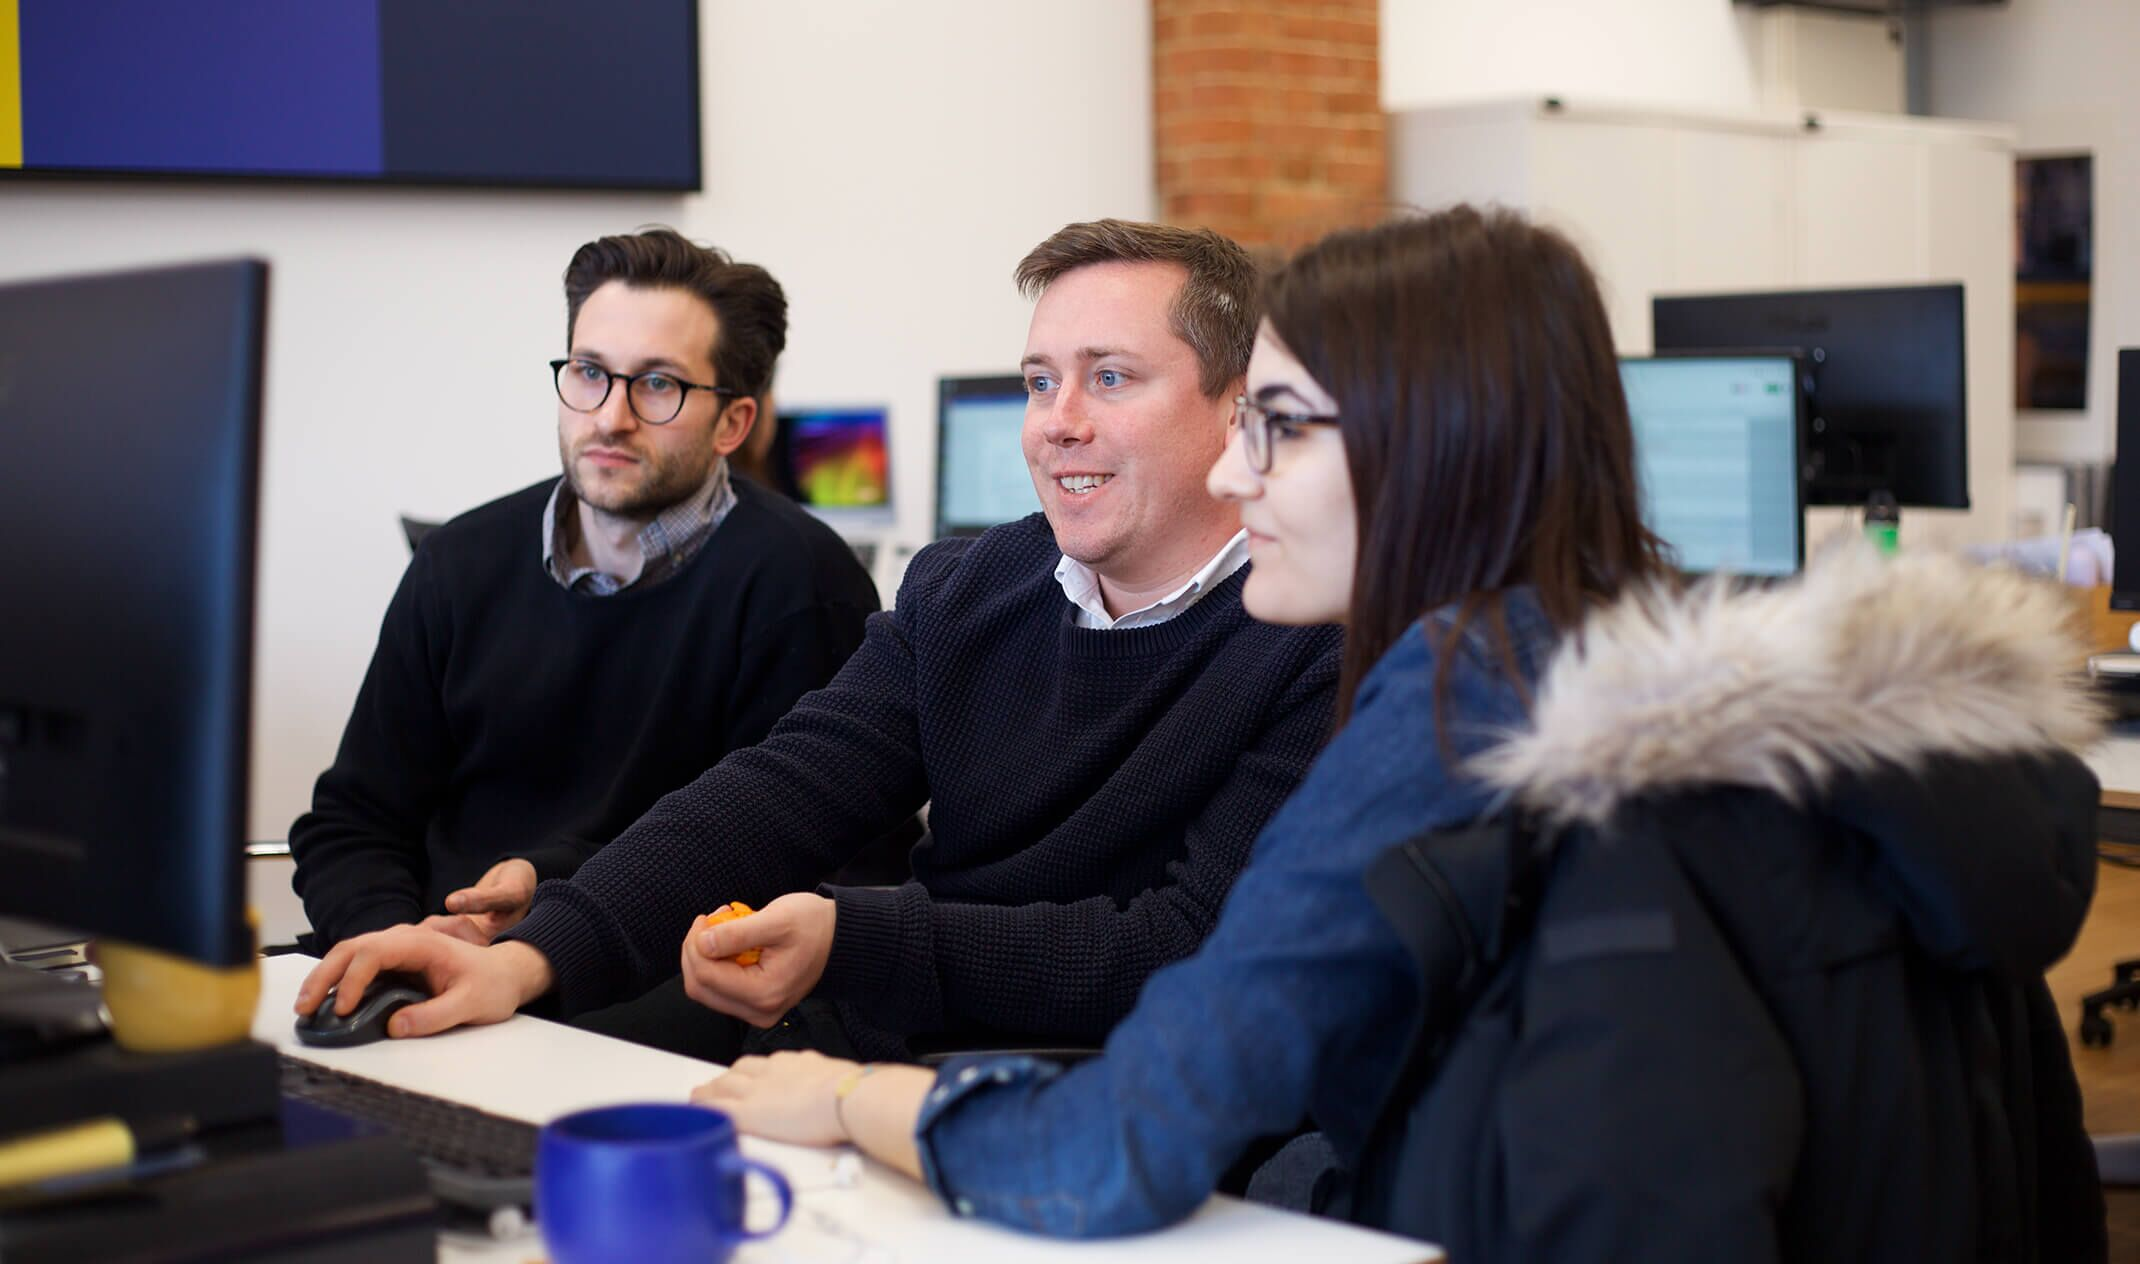 three colleagues discuss work on computer screen